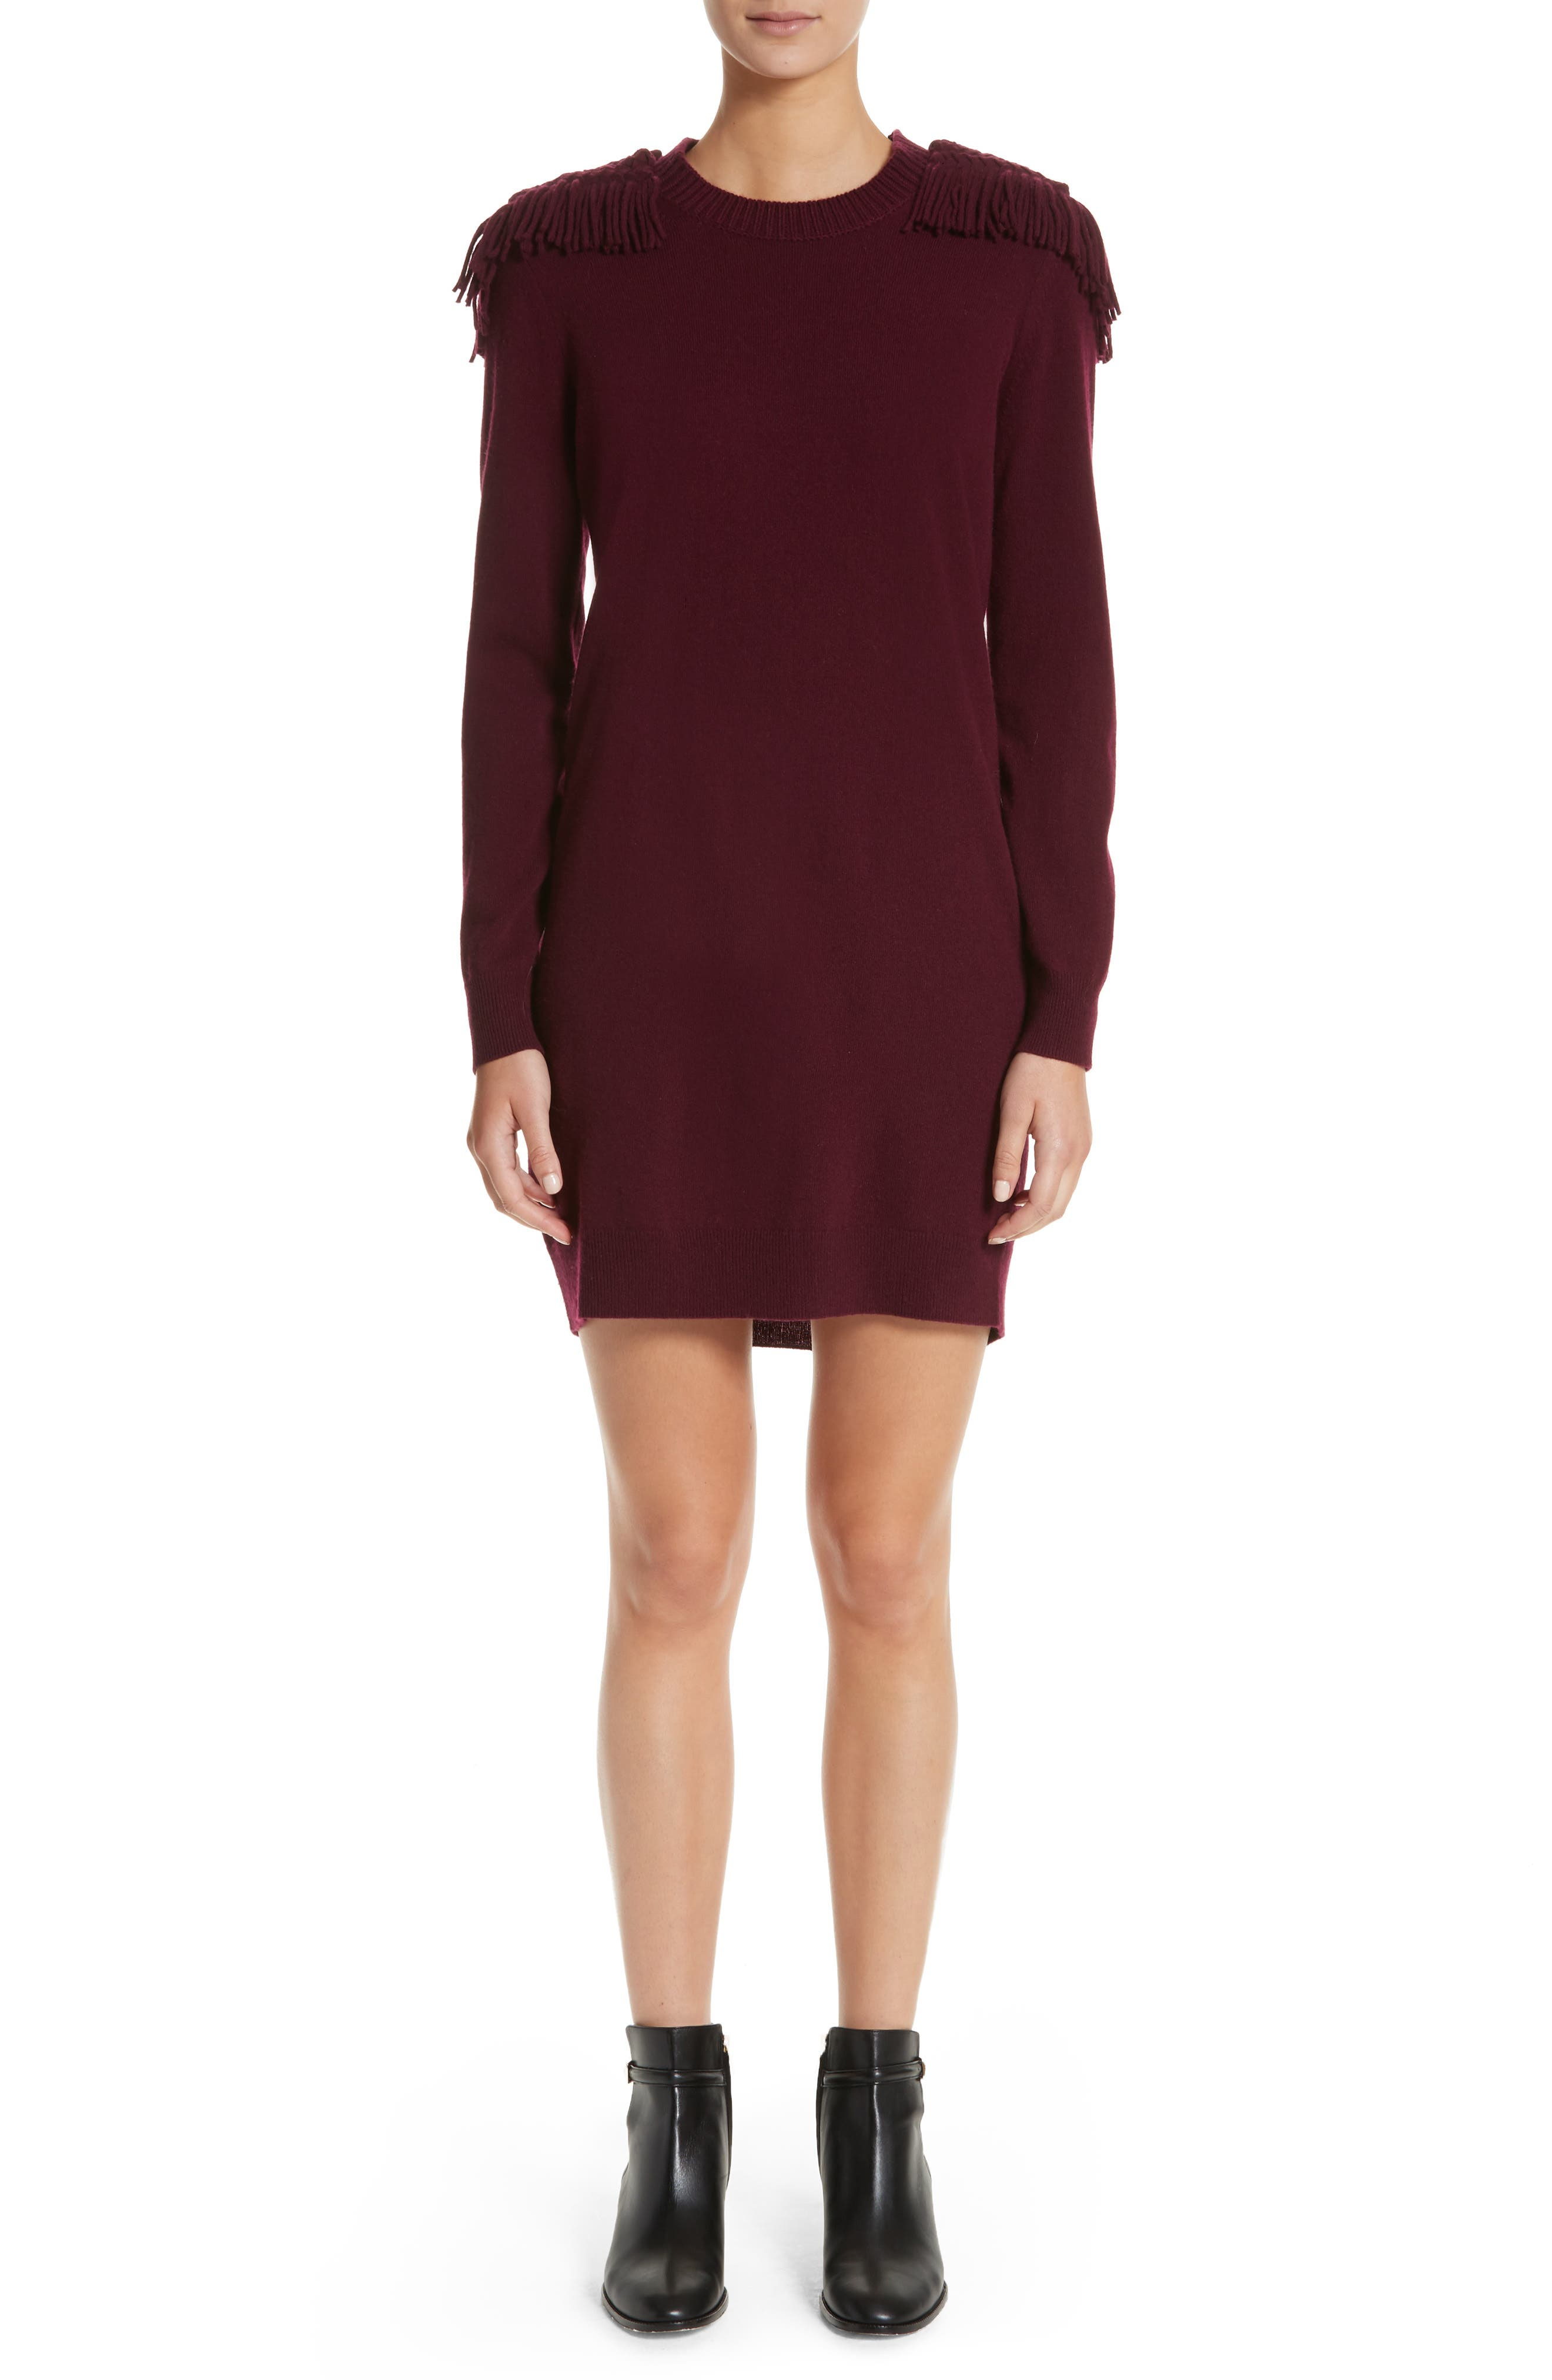 Burberry Neto Wool & Cashmere Fringe Sweater Dress